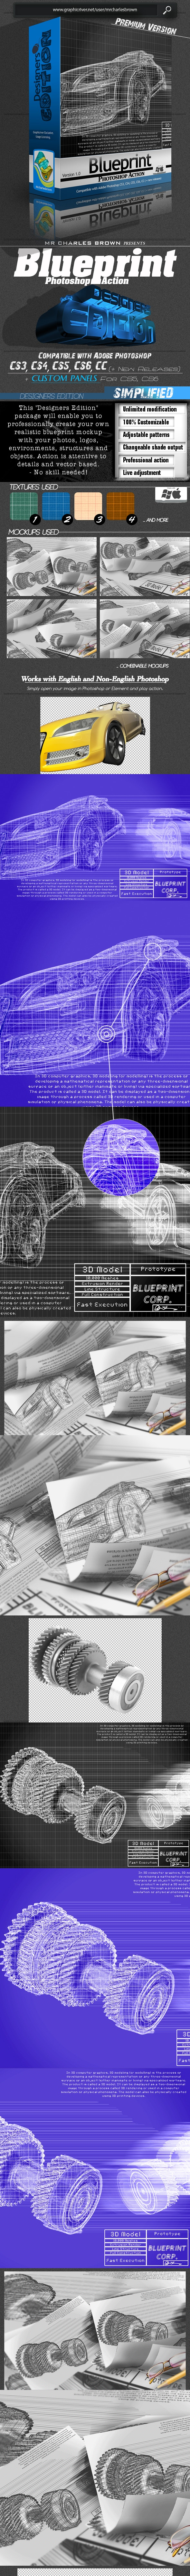 Blueprint Photoshop Action – Designers Edition - Photo Effects Actions